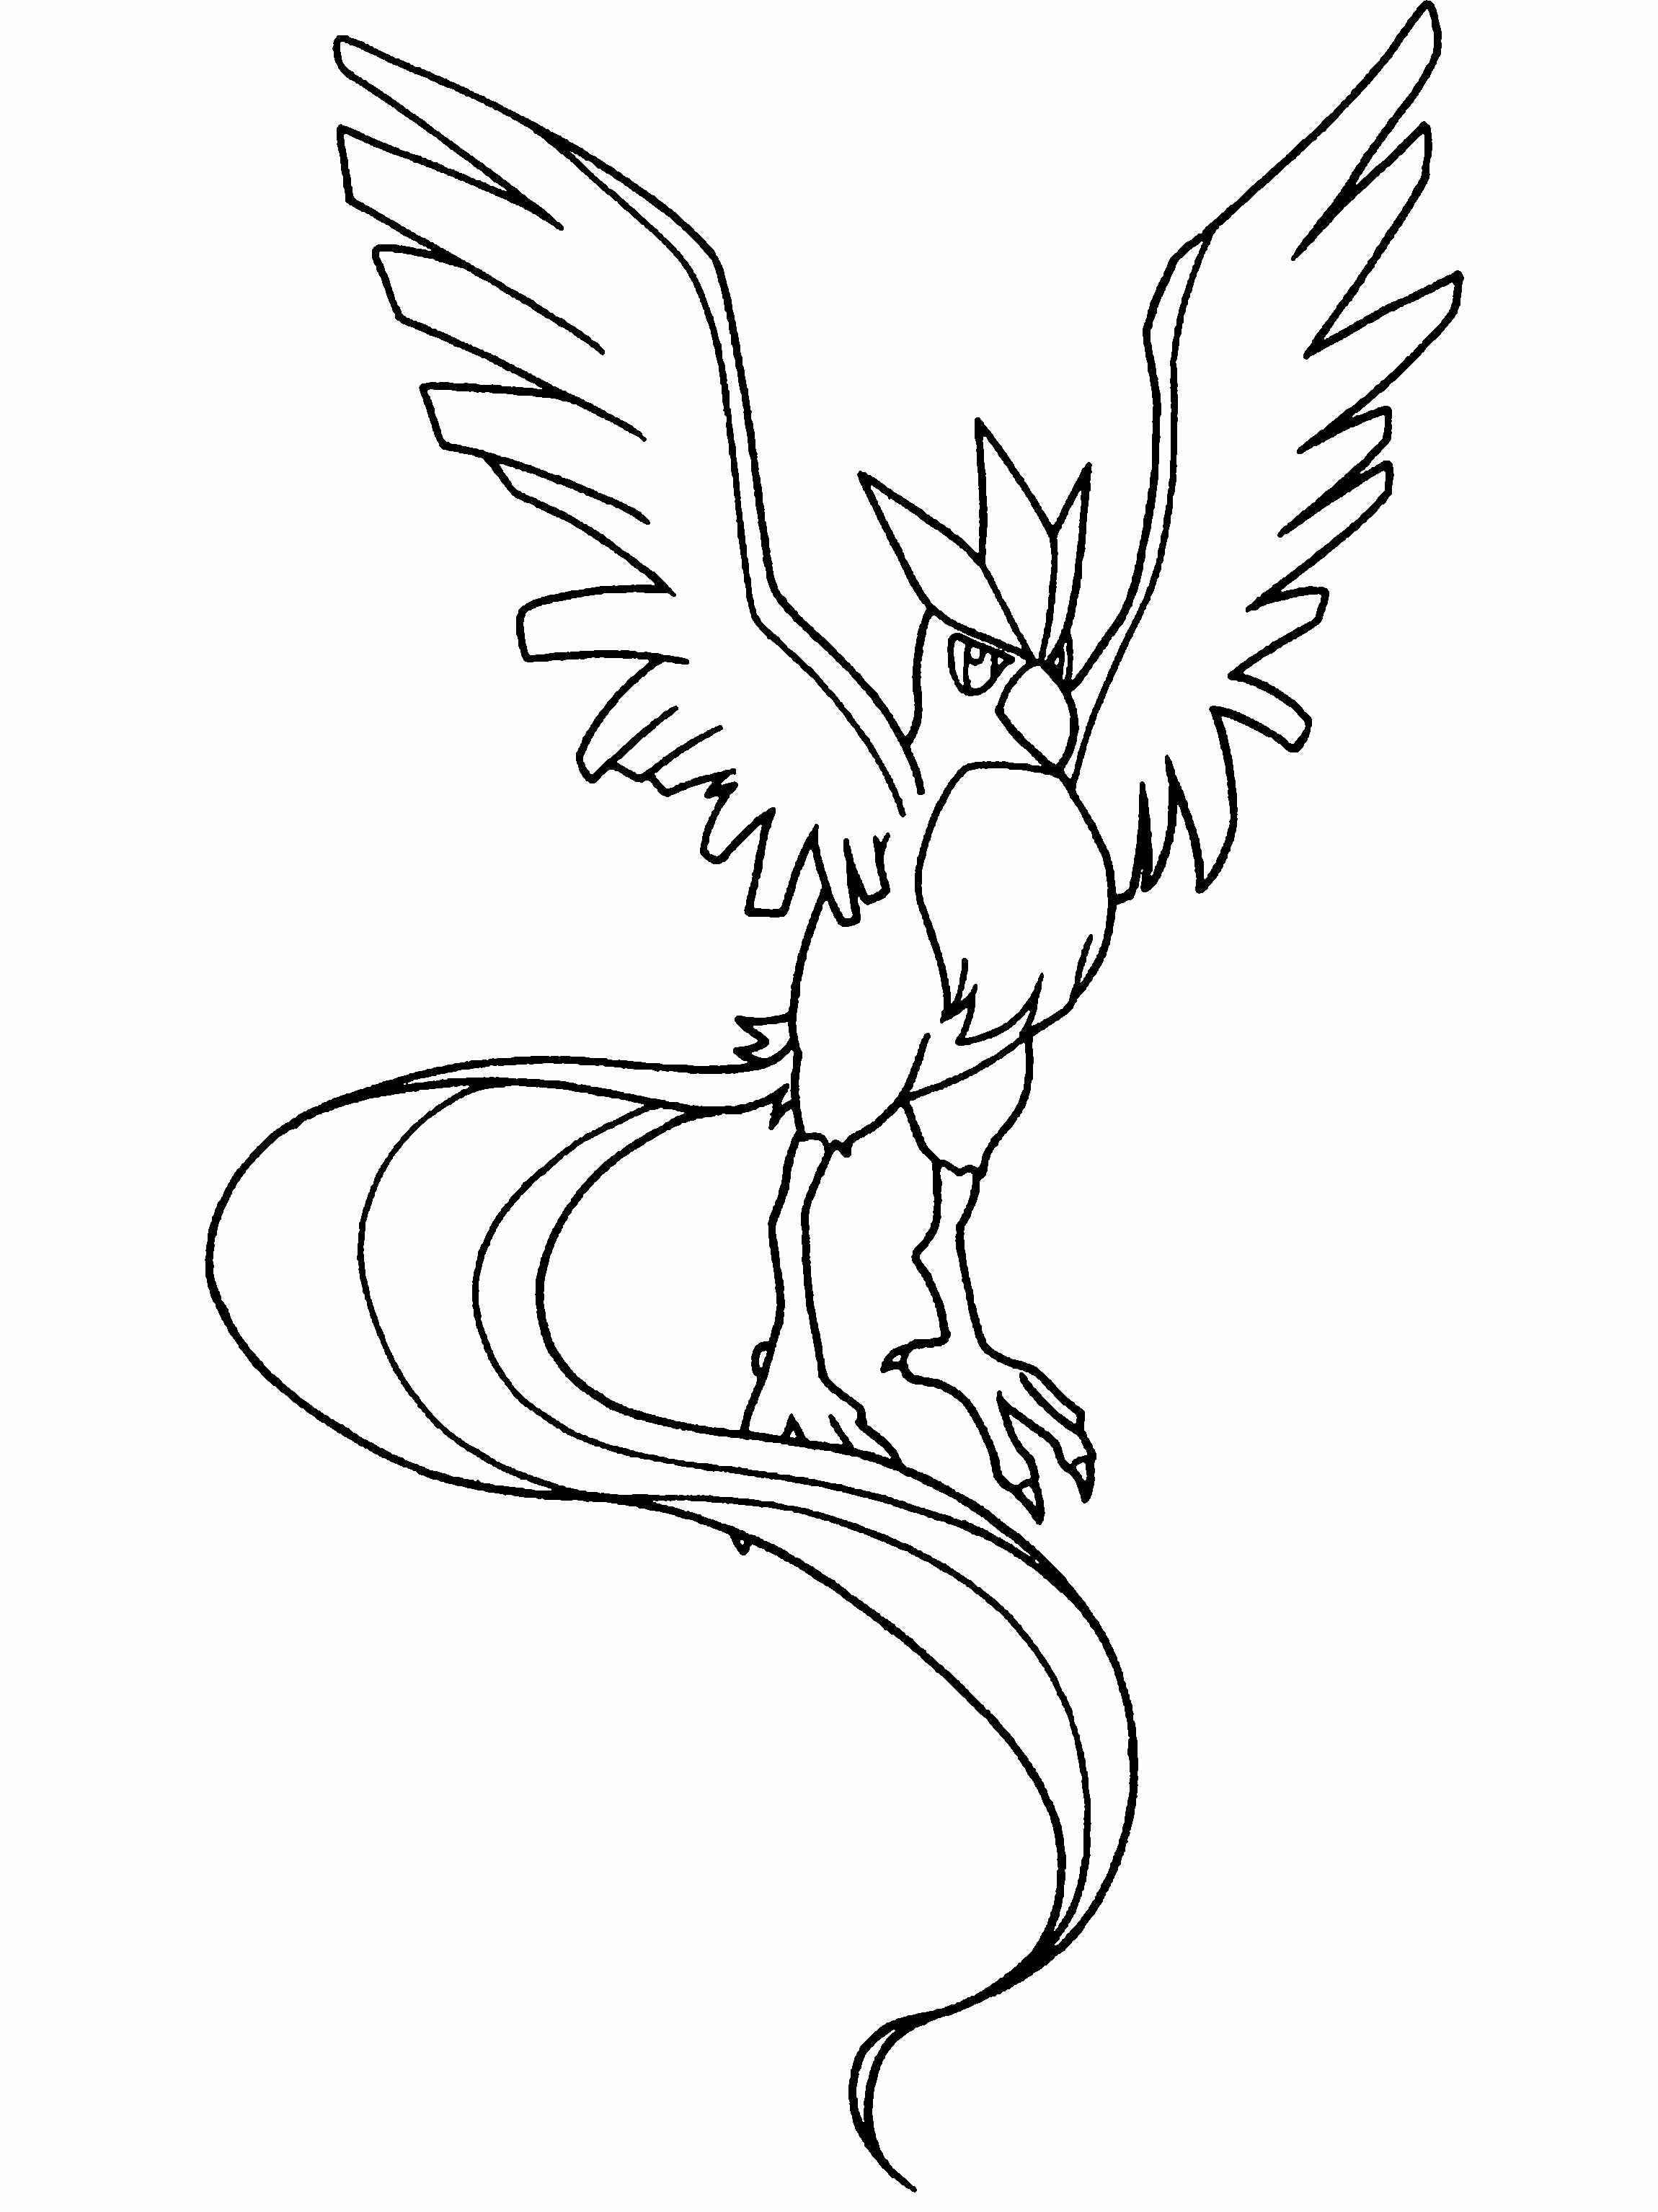 a great bird pokemon coloring page coloring pages lineart